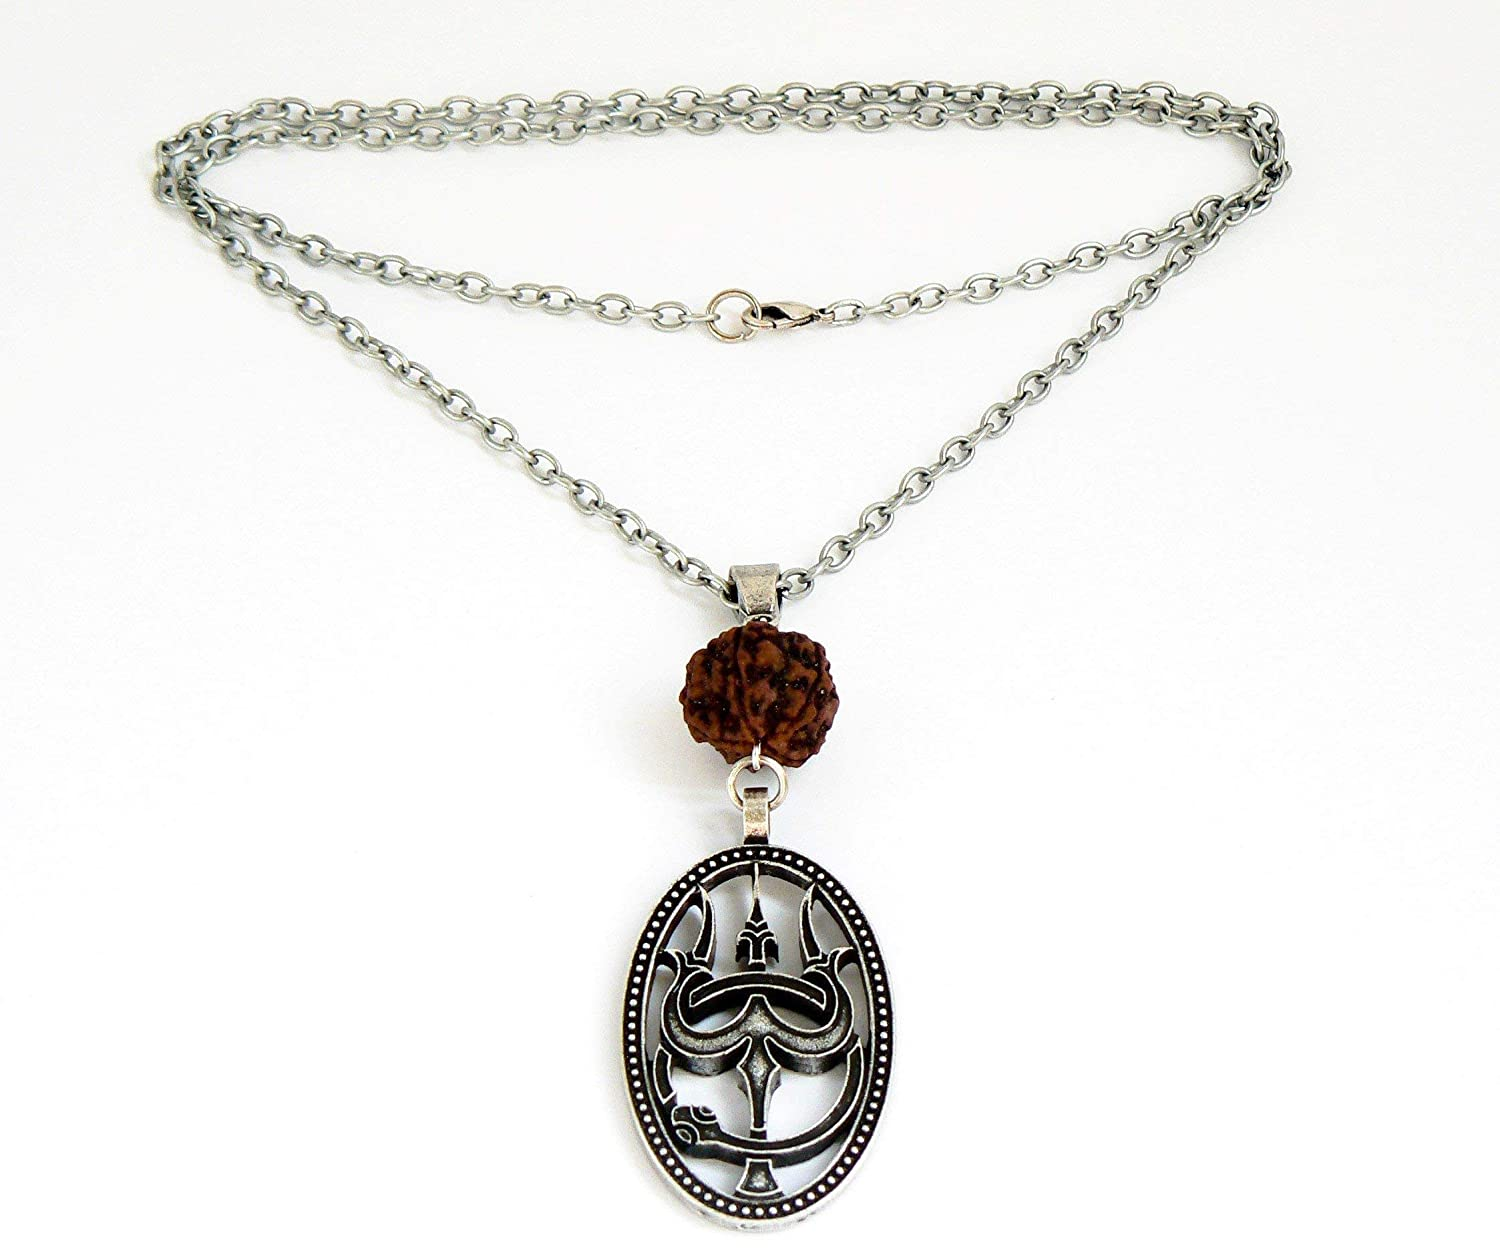 Shiva Trident necklace Hindu symbol Lord Shiva necklace Tribal Bohemian statement necklace Long layering necklace by Inali